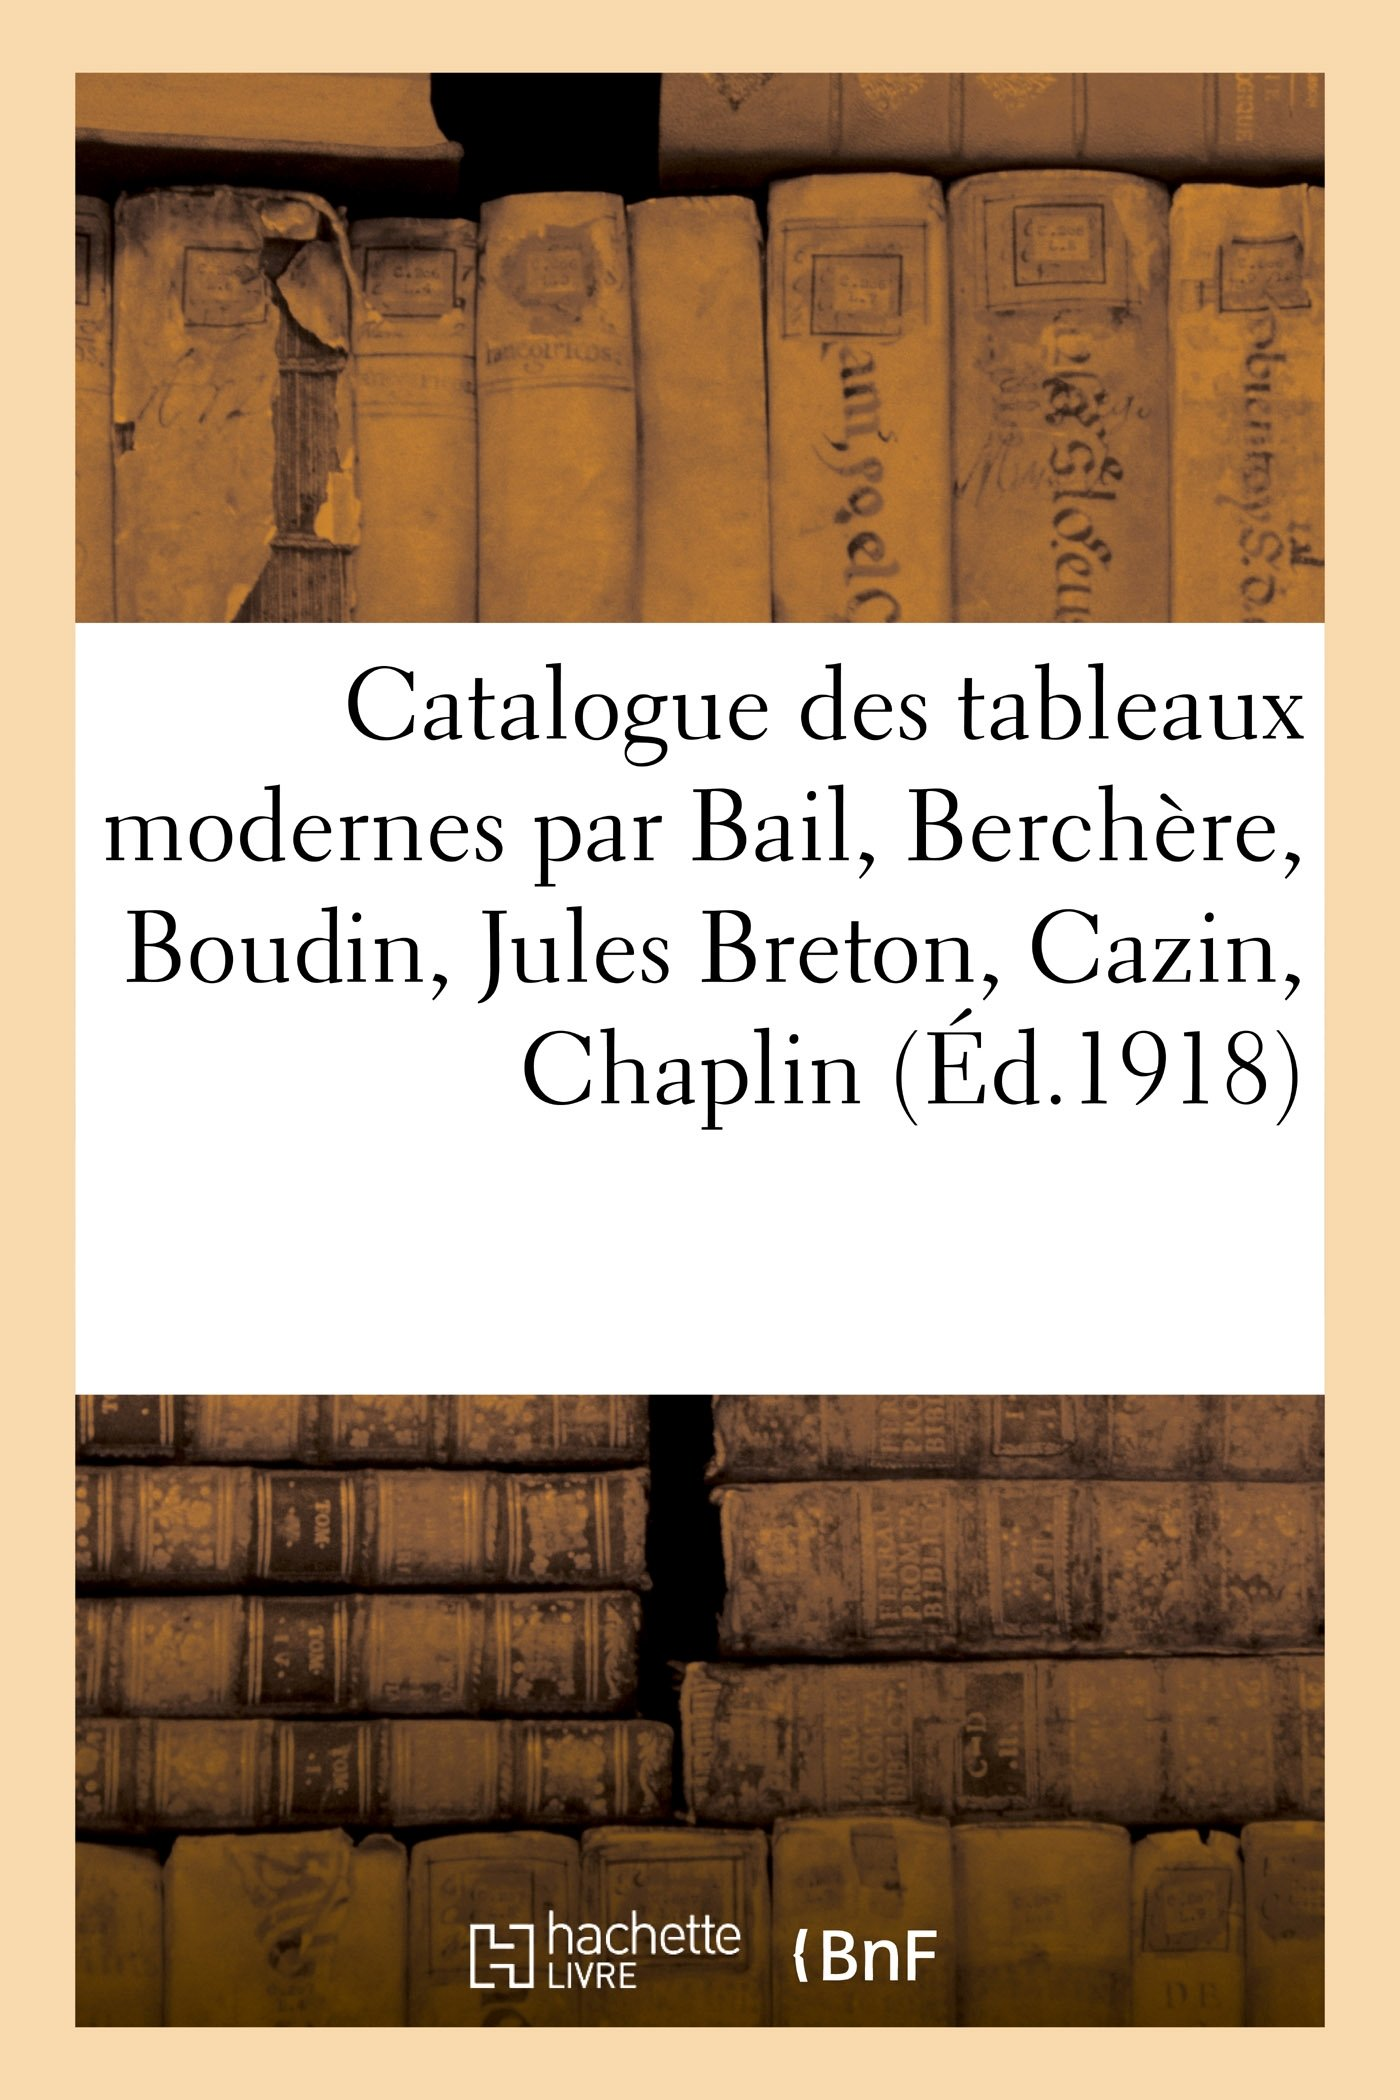 Catalogue des tableaux modernes par Bail, Berchère, Boudin, Jules Breton, Cazin, Chaplin (Arts) (French Edition) PDF